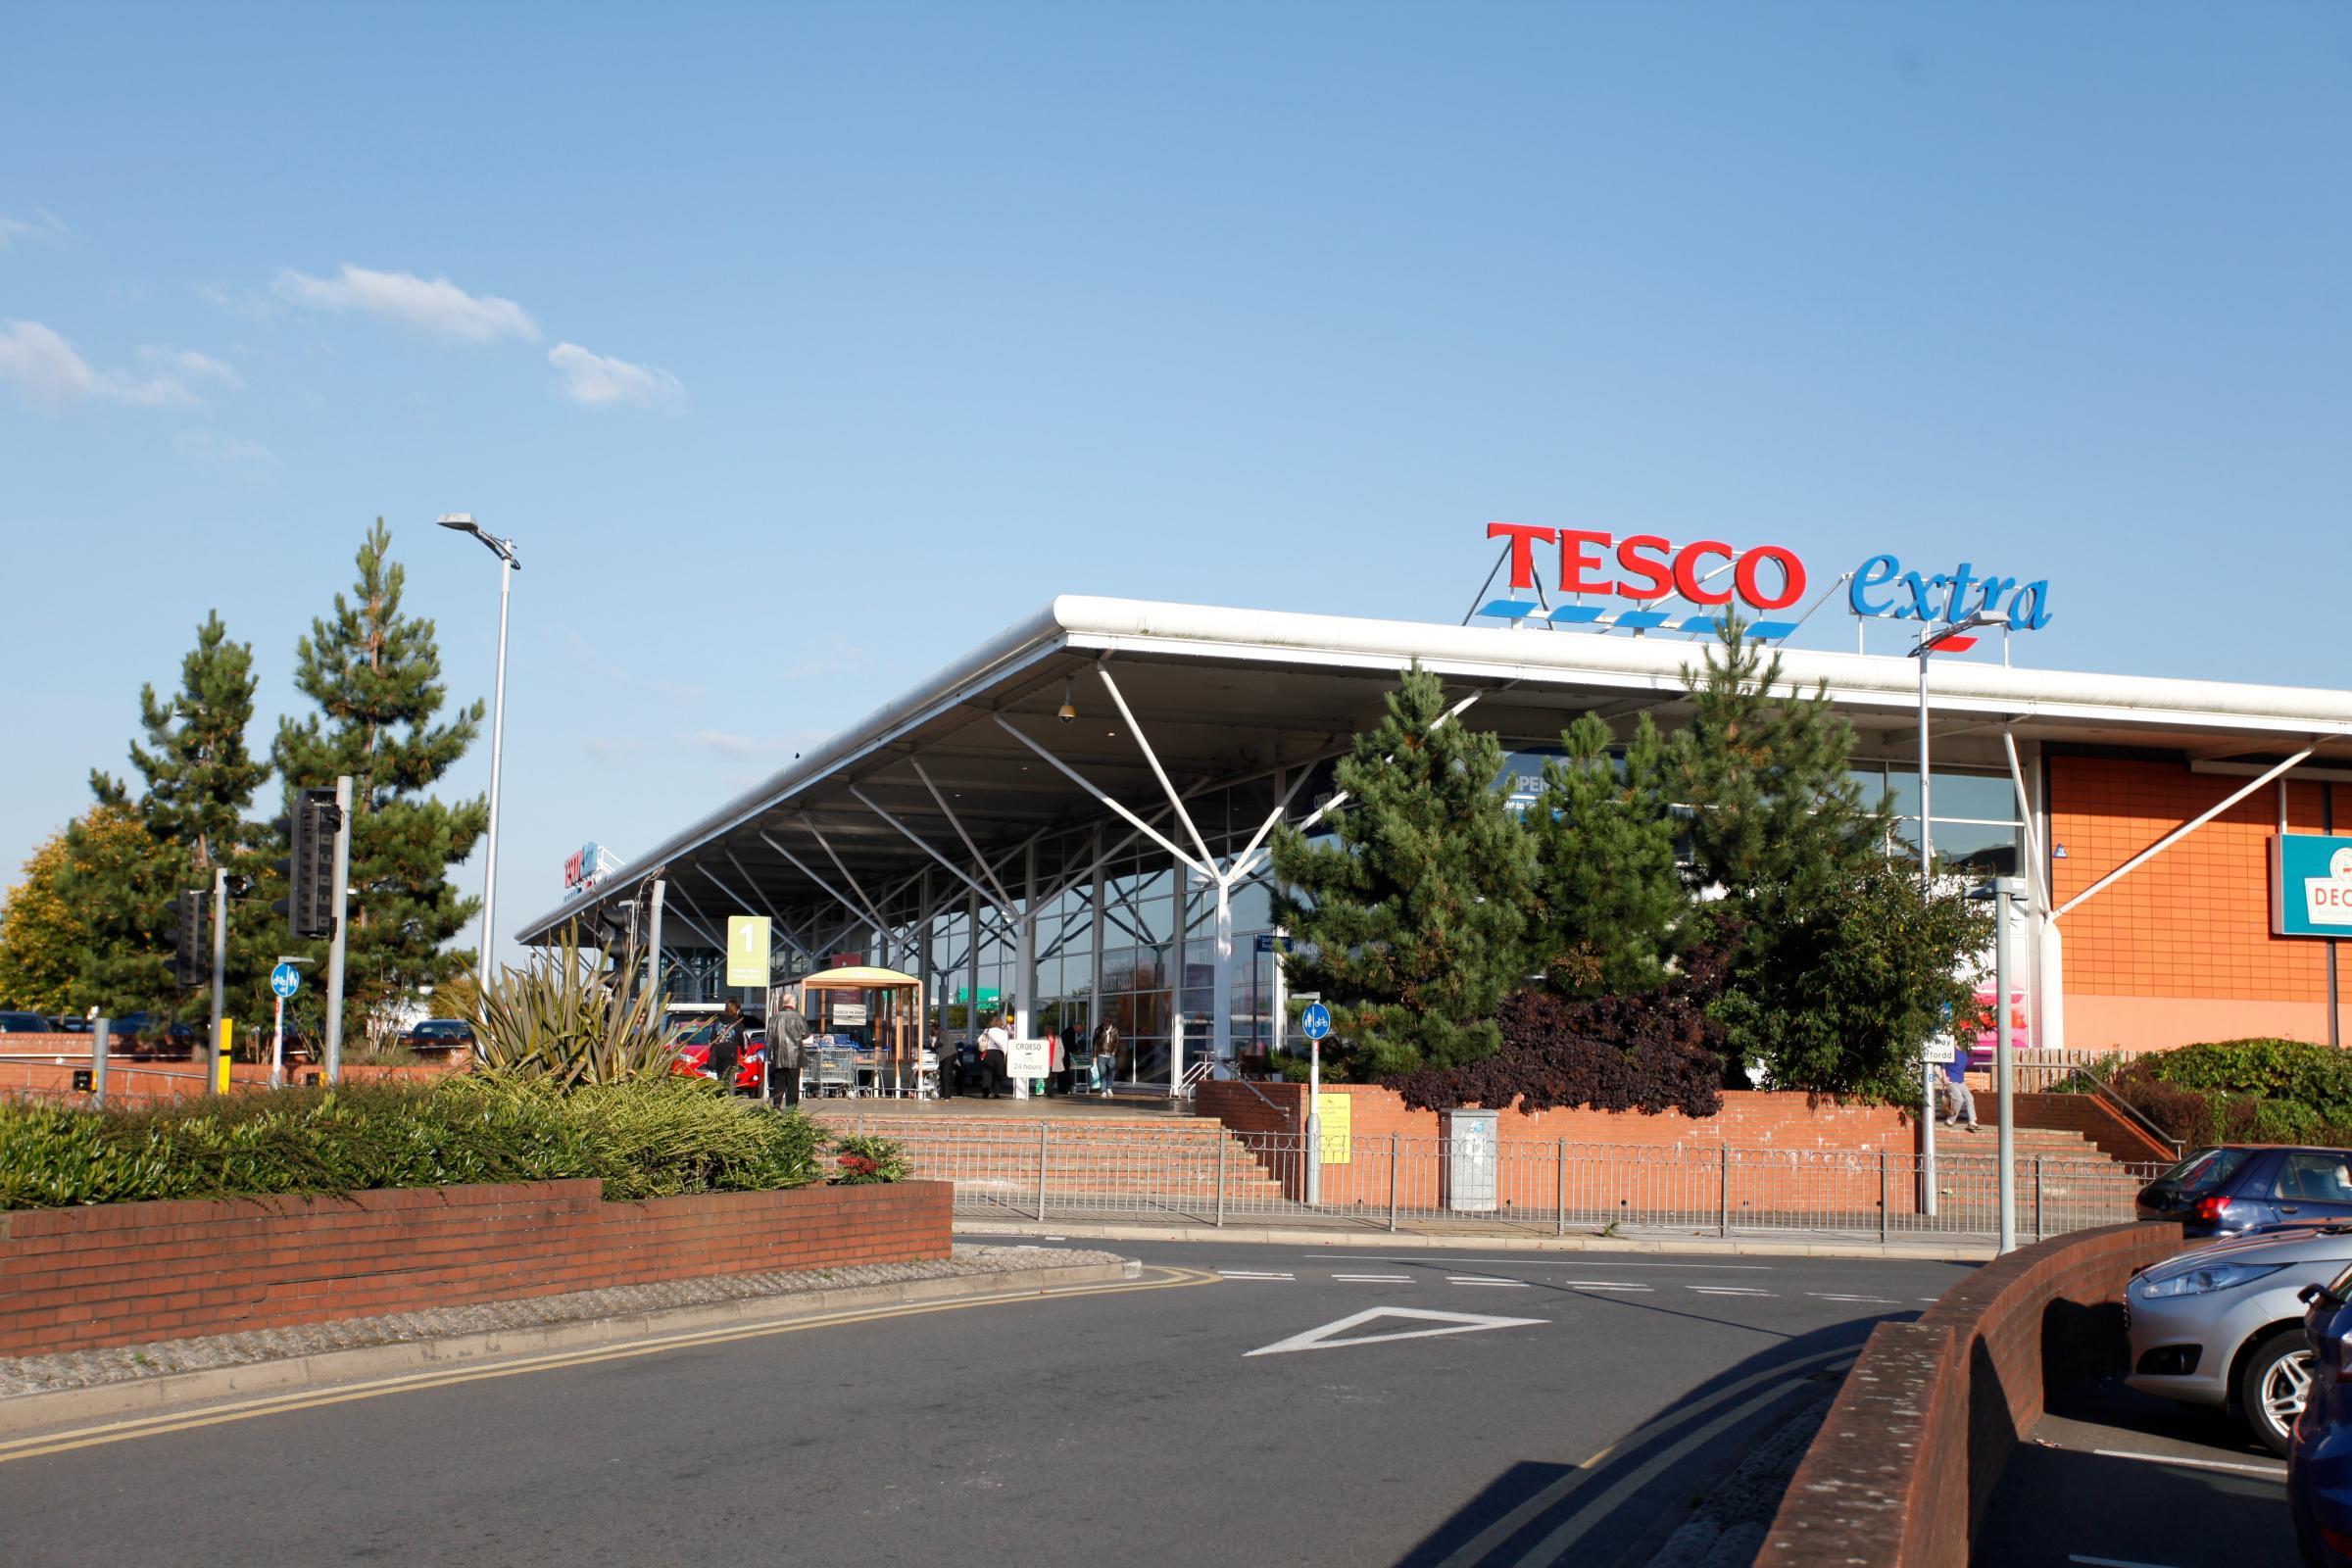 Tesco in Wrexham confirm travellers have pitched up in car park